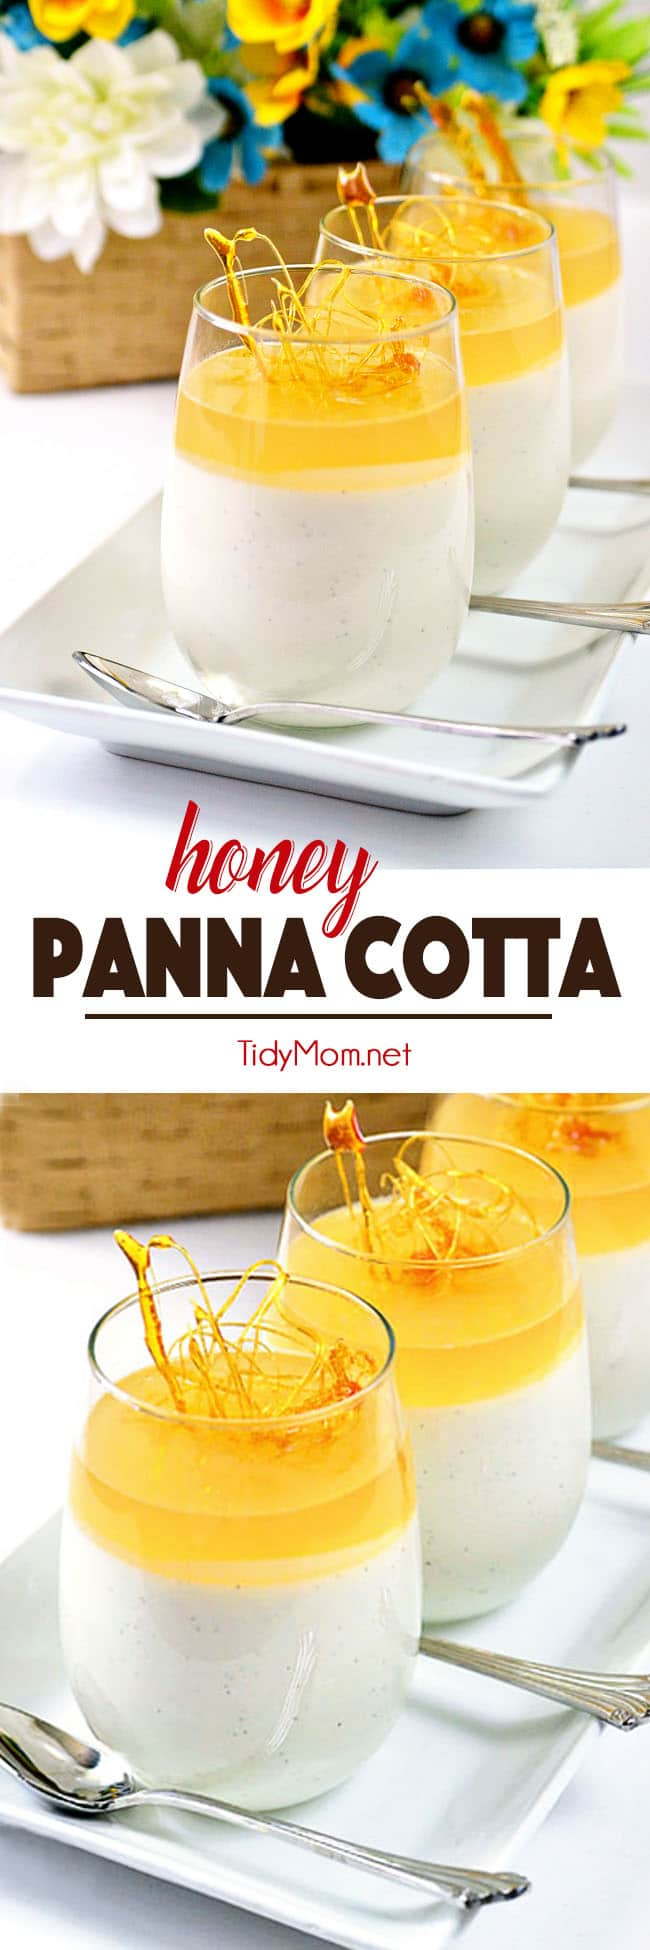 """Honey Panna Cotta looks like a fancy-schmancy dessert, but actually, it only takes a few minutes to prepare and the rest of the time, the fridge does all the work for you, making it a great """"make ahead"""" dessert for a party table, and with it's simple, not too sweet flavor, it would be the perfect ending to a heavy meal. Get this HONEY PANNA COTTA recipe at TidyMom.net #dessert #pannacotta #honey"""